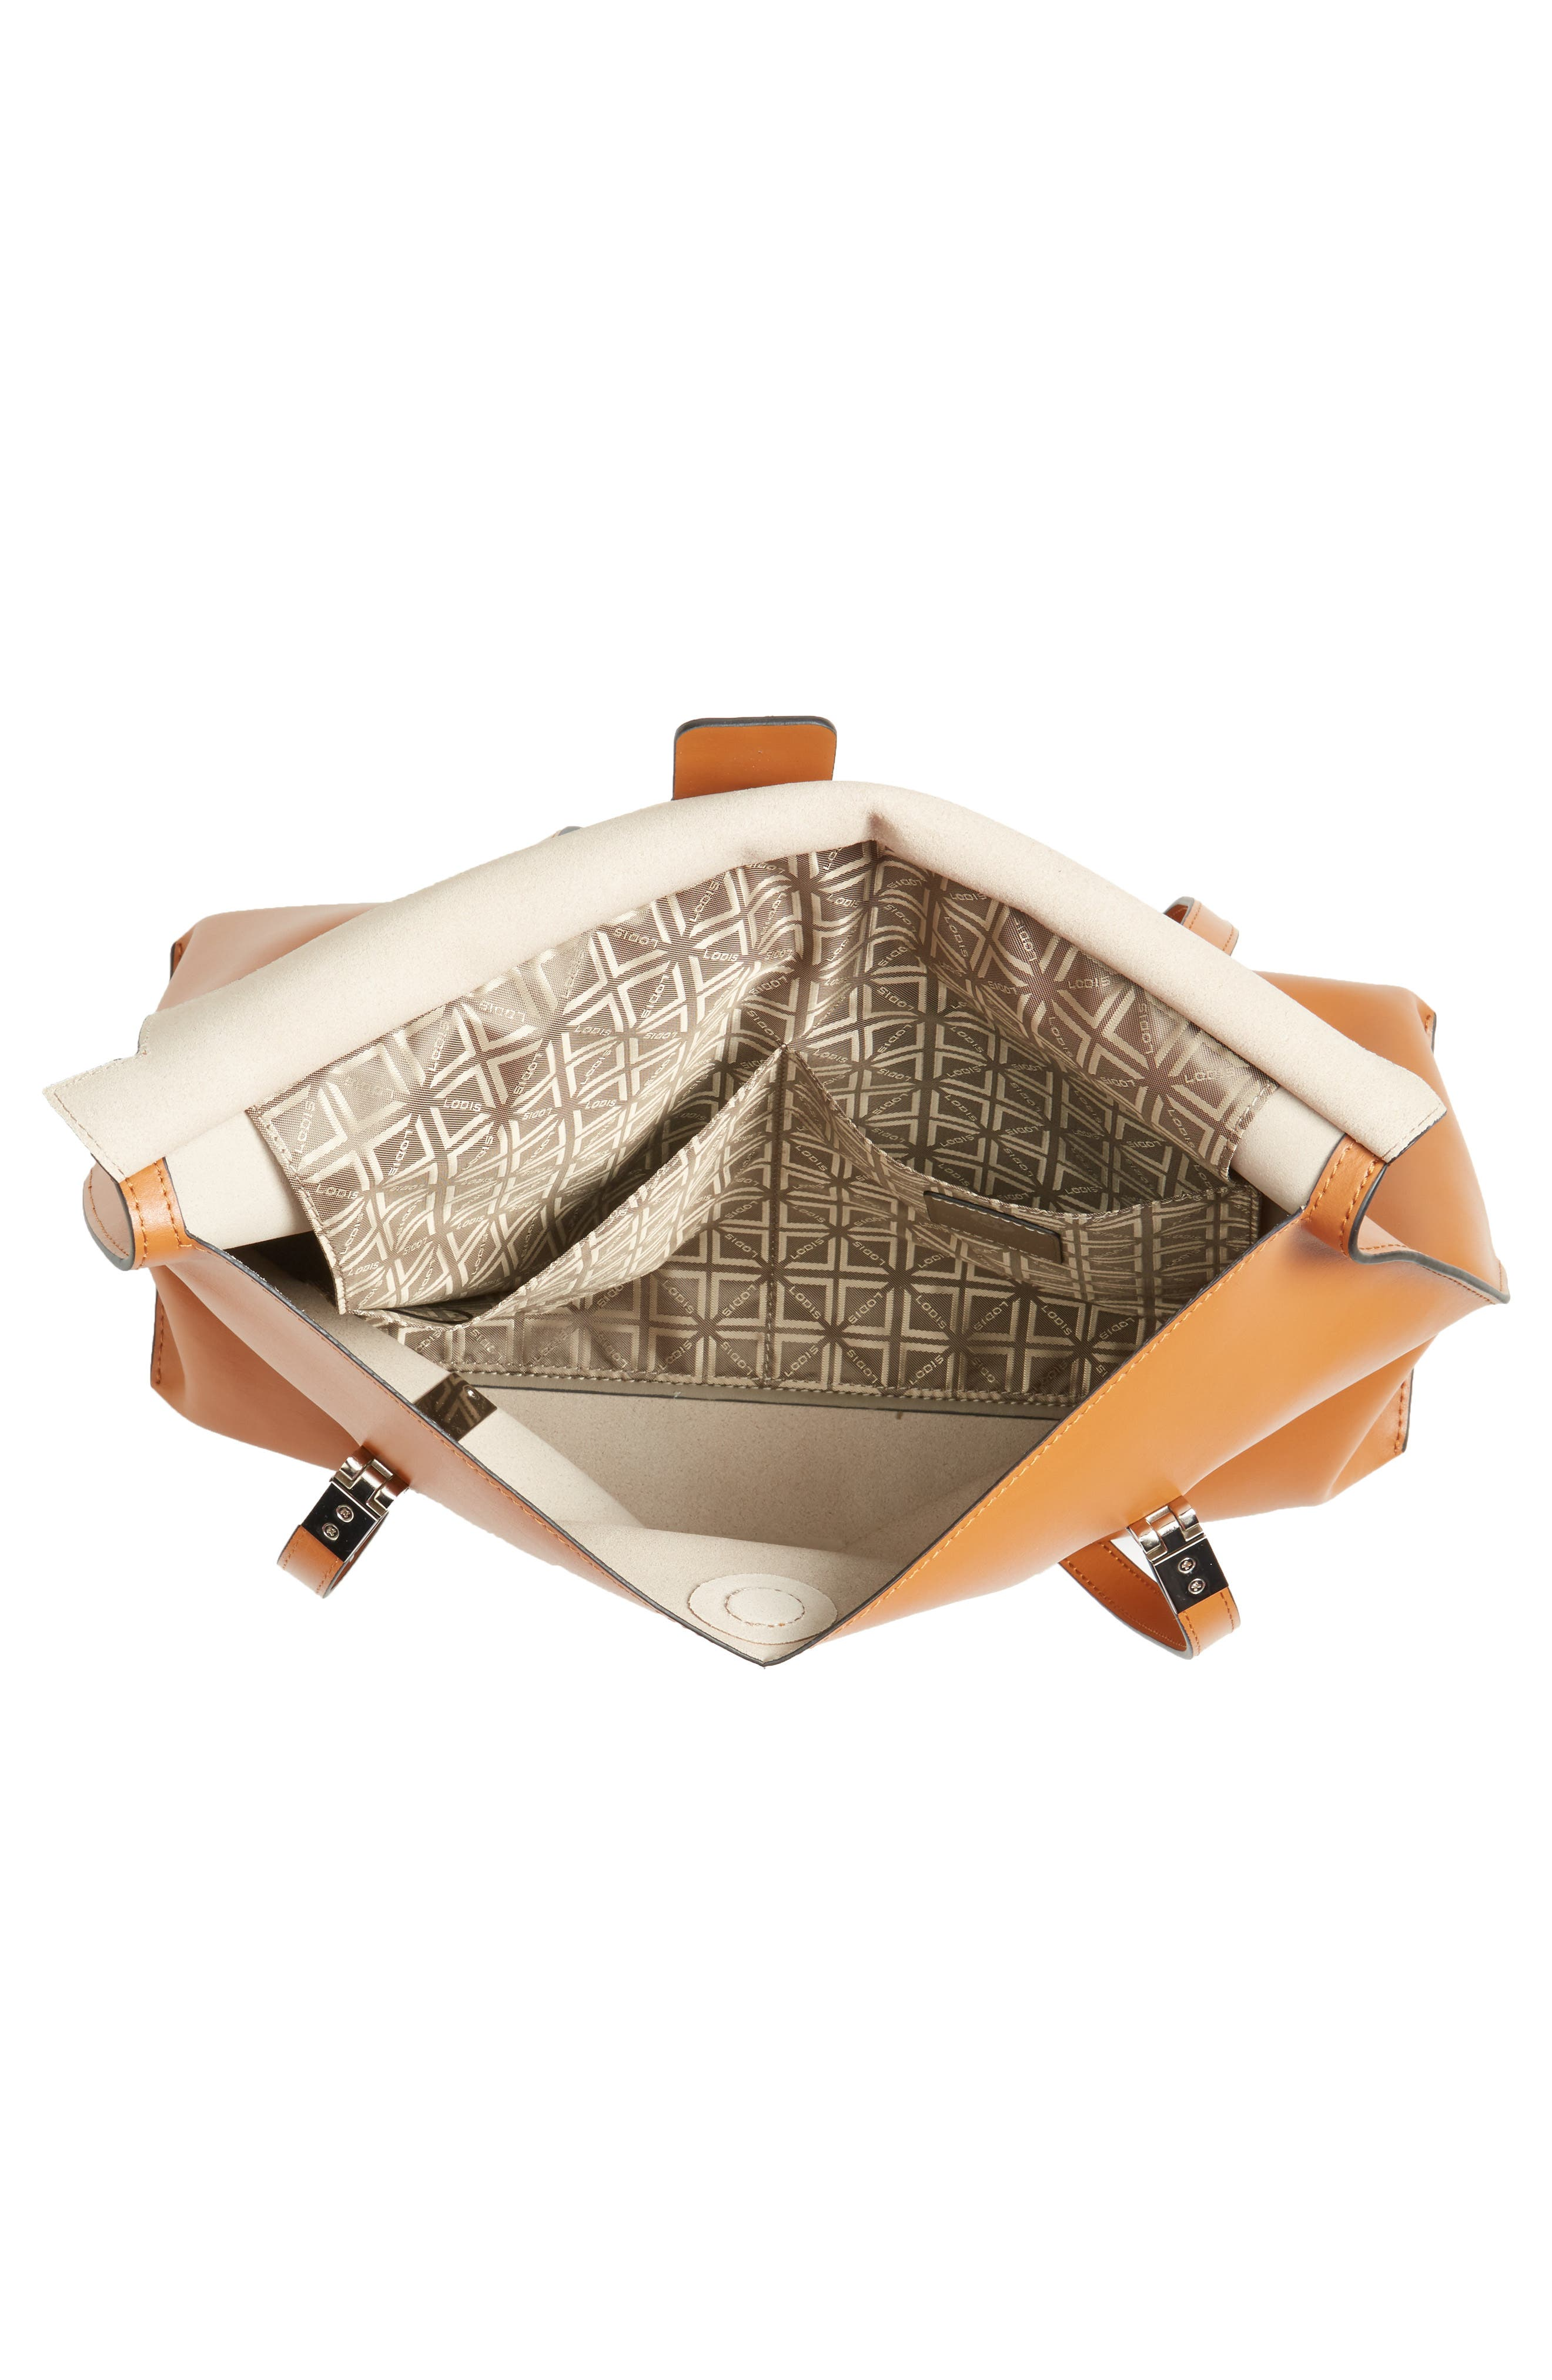 LODIS Silicon Valley - Lorrain RFID Leather Satchel,                             Alternate thumbnail 4, color,                             Toffee/ Taupe